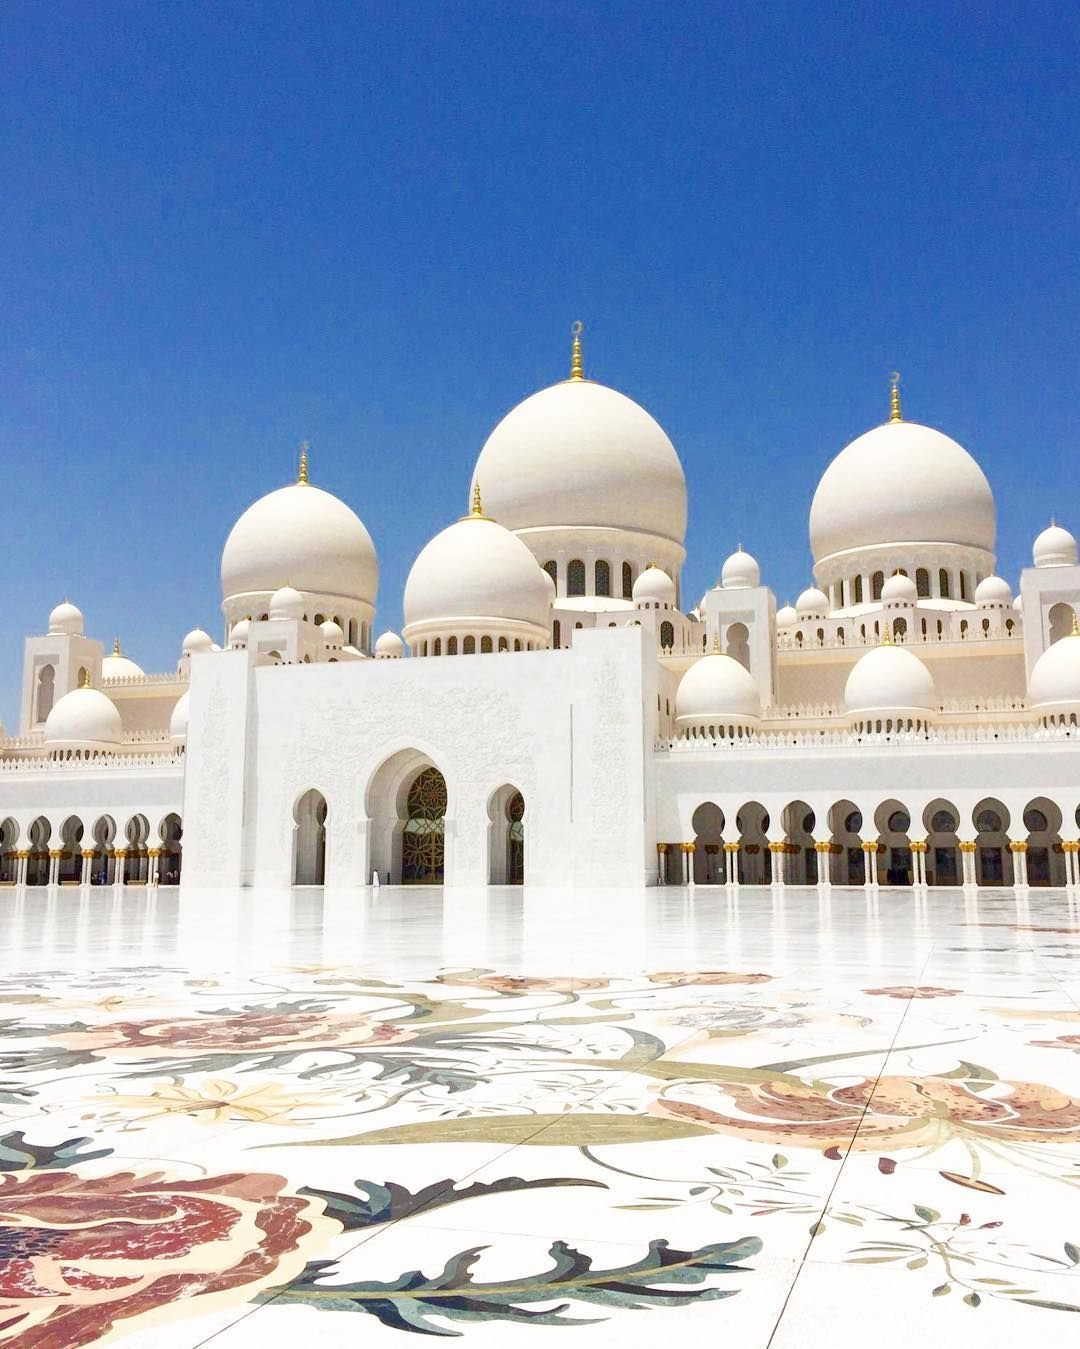 Exterior: Sheikh Zayed Grand Mosque Center Rises Majestically From